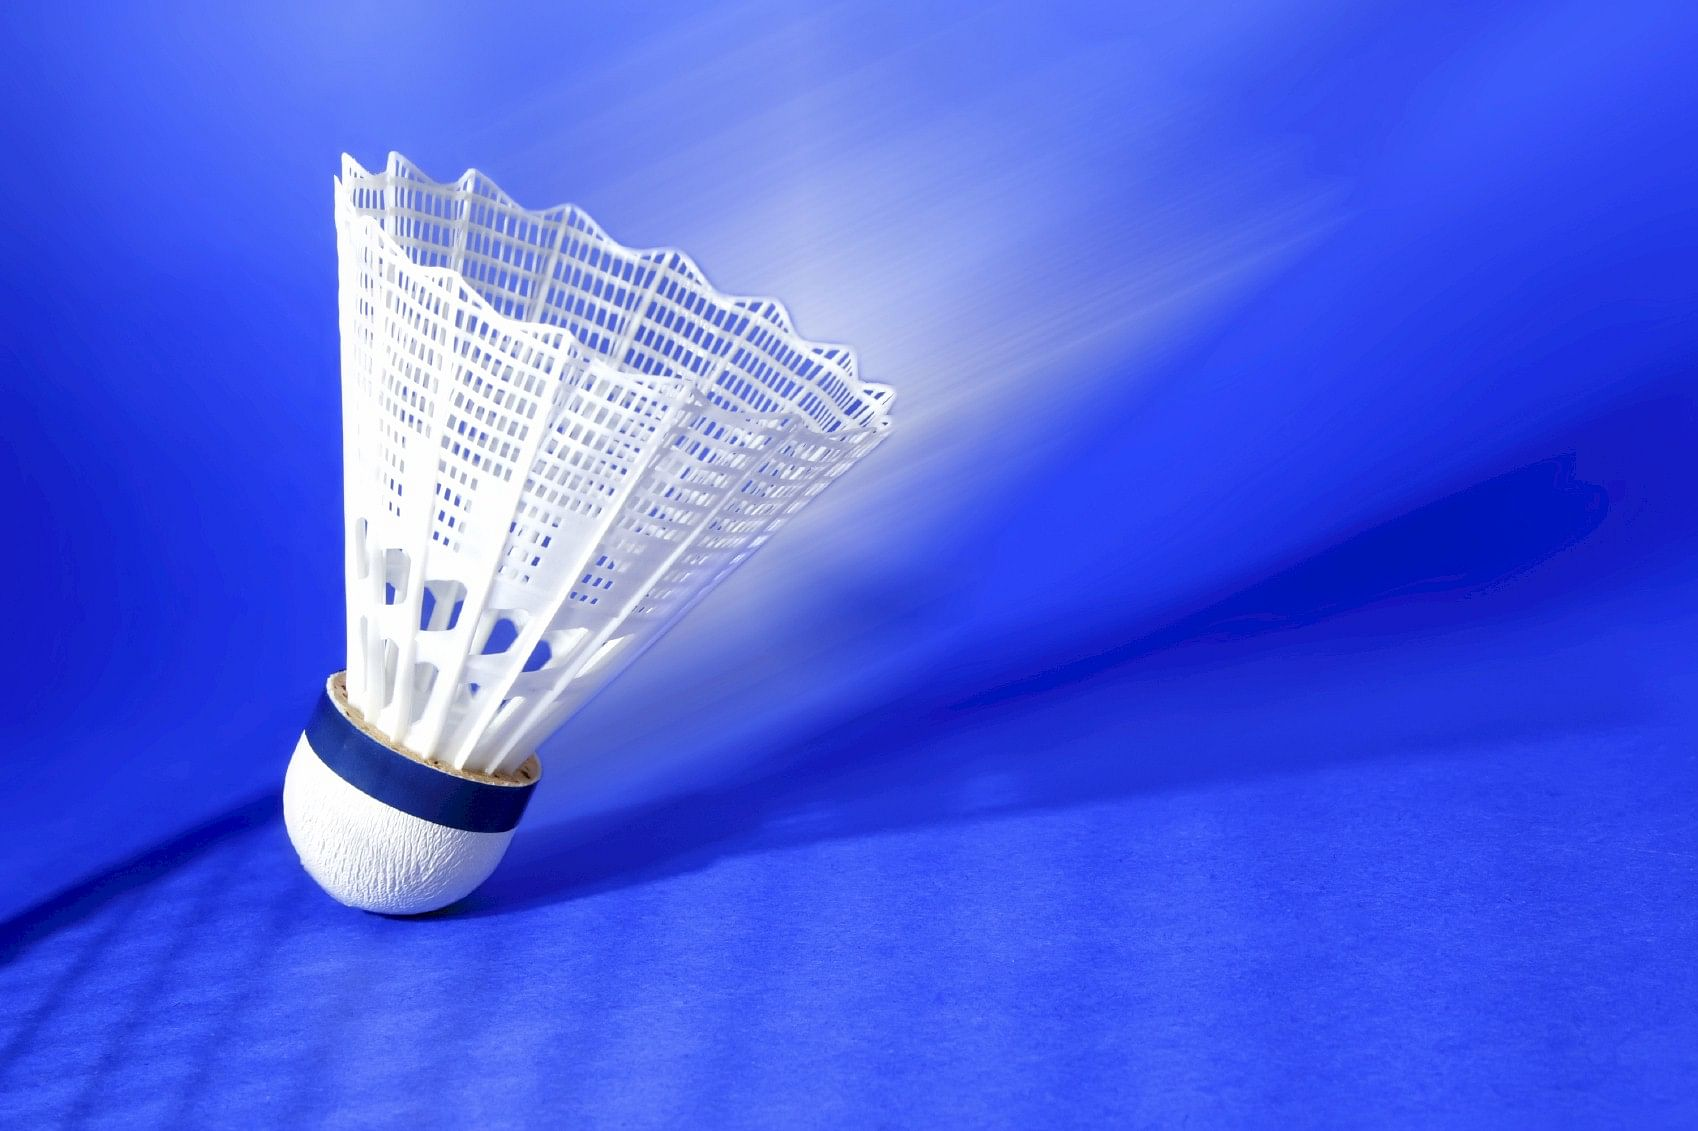 Top shuttlers could miss part of IBL